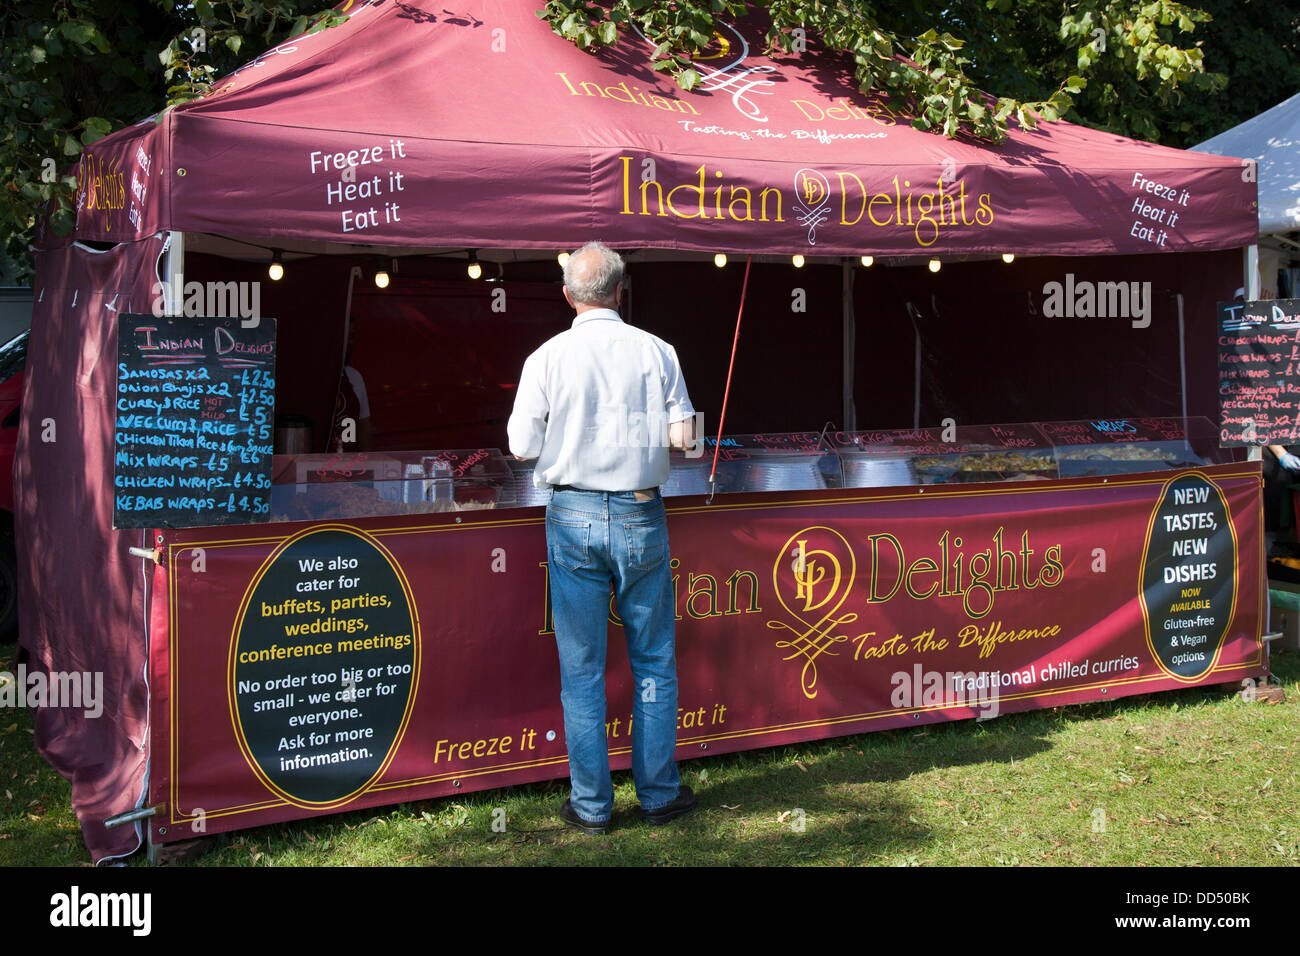 Stonyhurst College, Clitheroe, UK. 26th August, 2013. Indian Delights catering, and takeaway at the Great British - Stock Image